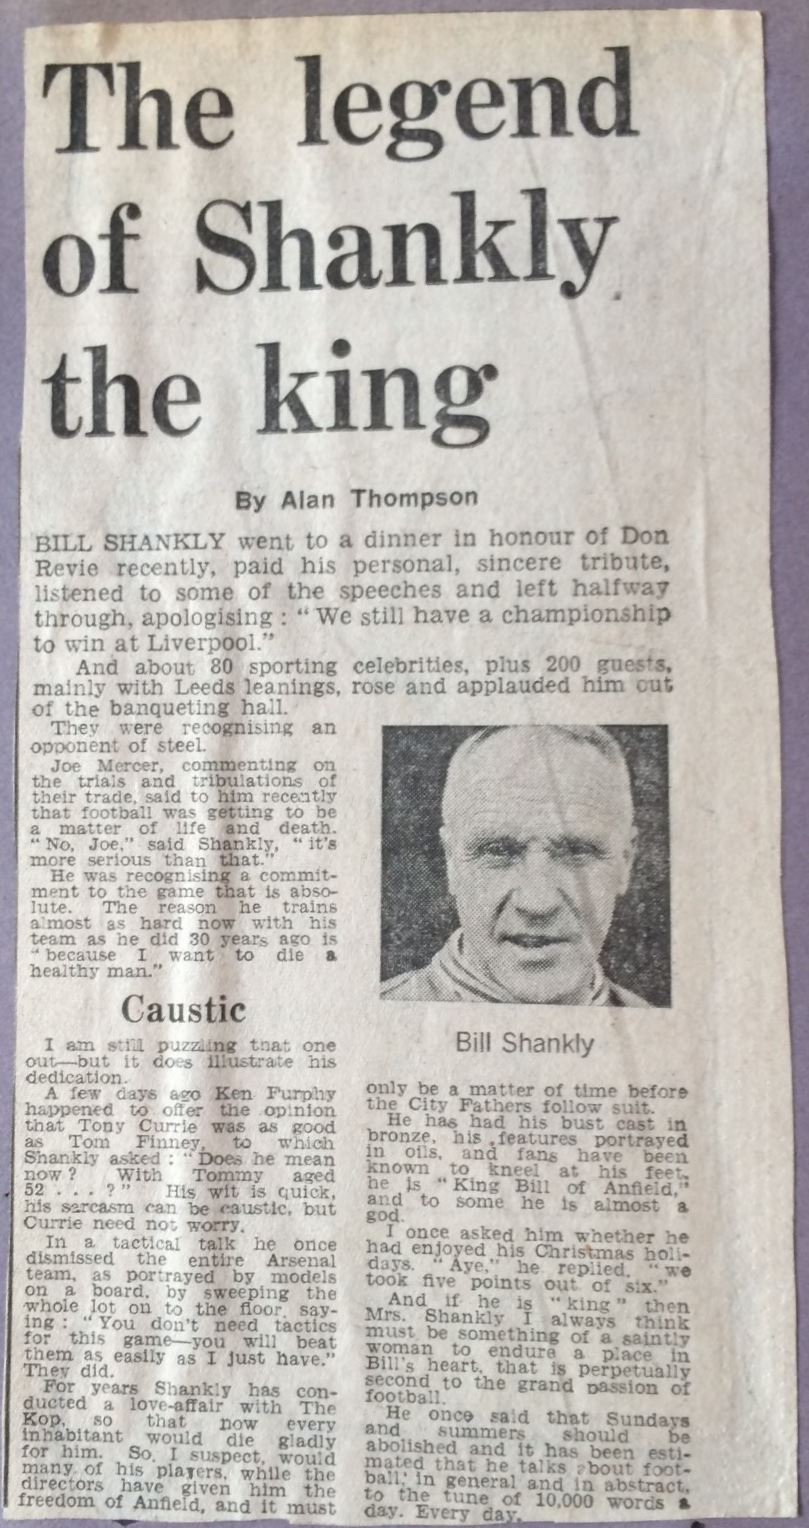 The legend of Shankly the king - 1974